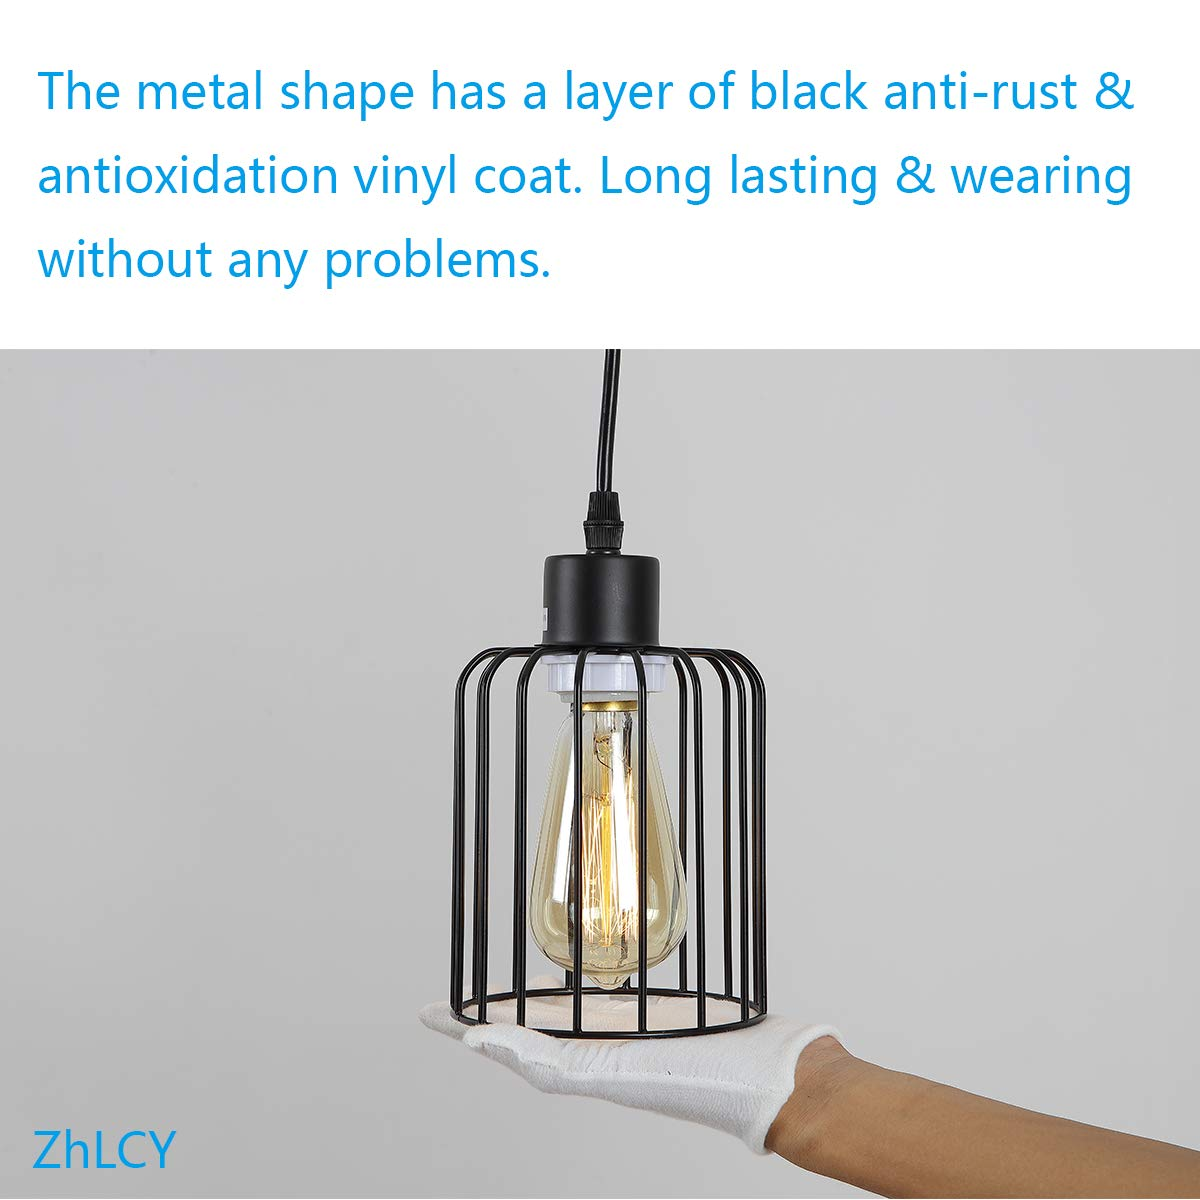 ZhLCY 2 Pack Vintage Mini Wire Pendant Lights with Matte Black Metal Shape, Industrial Caged Hanging Lights, Rustic Farmhouse Lighting Fixtures for Kitchen Loft Bar Counter Foyer Dining Room